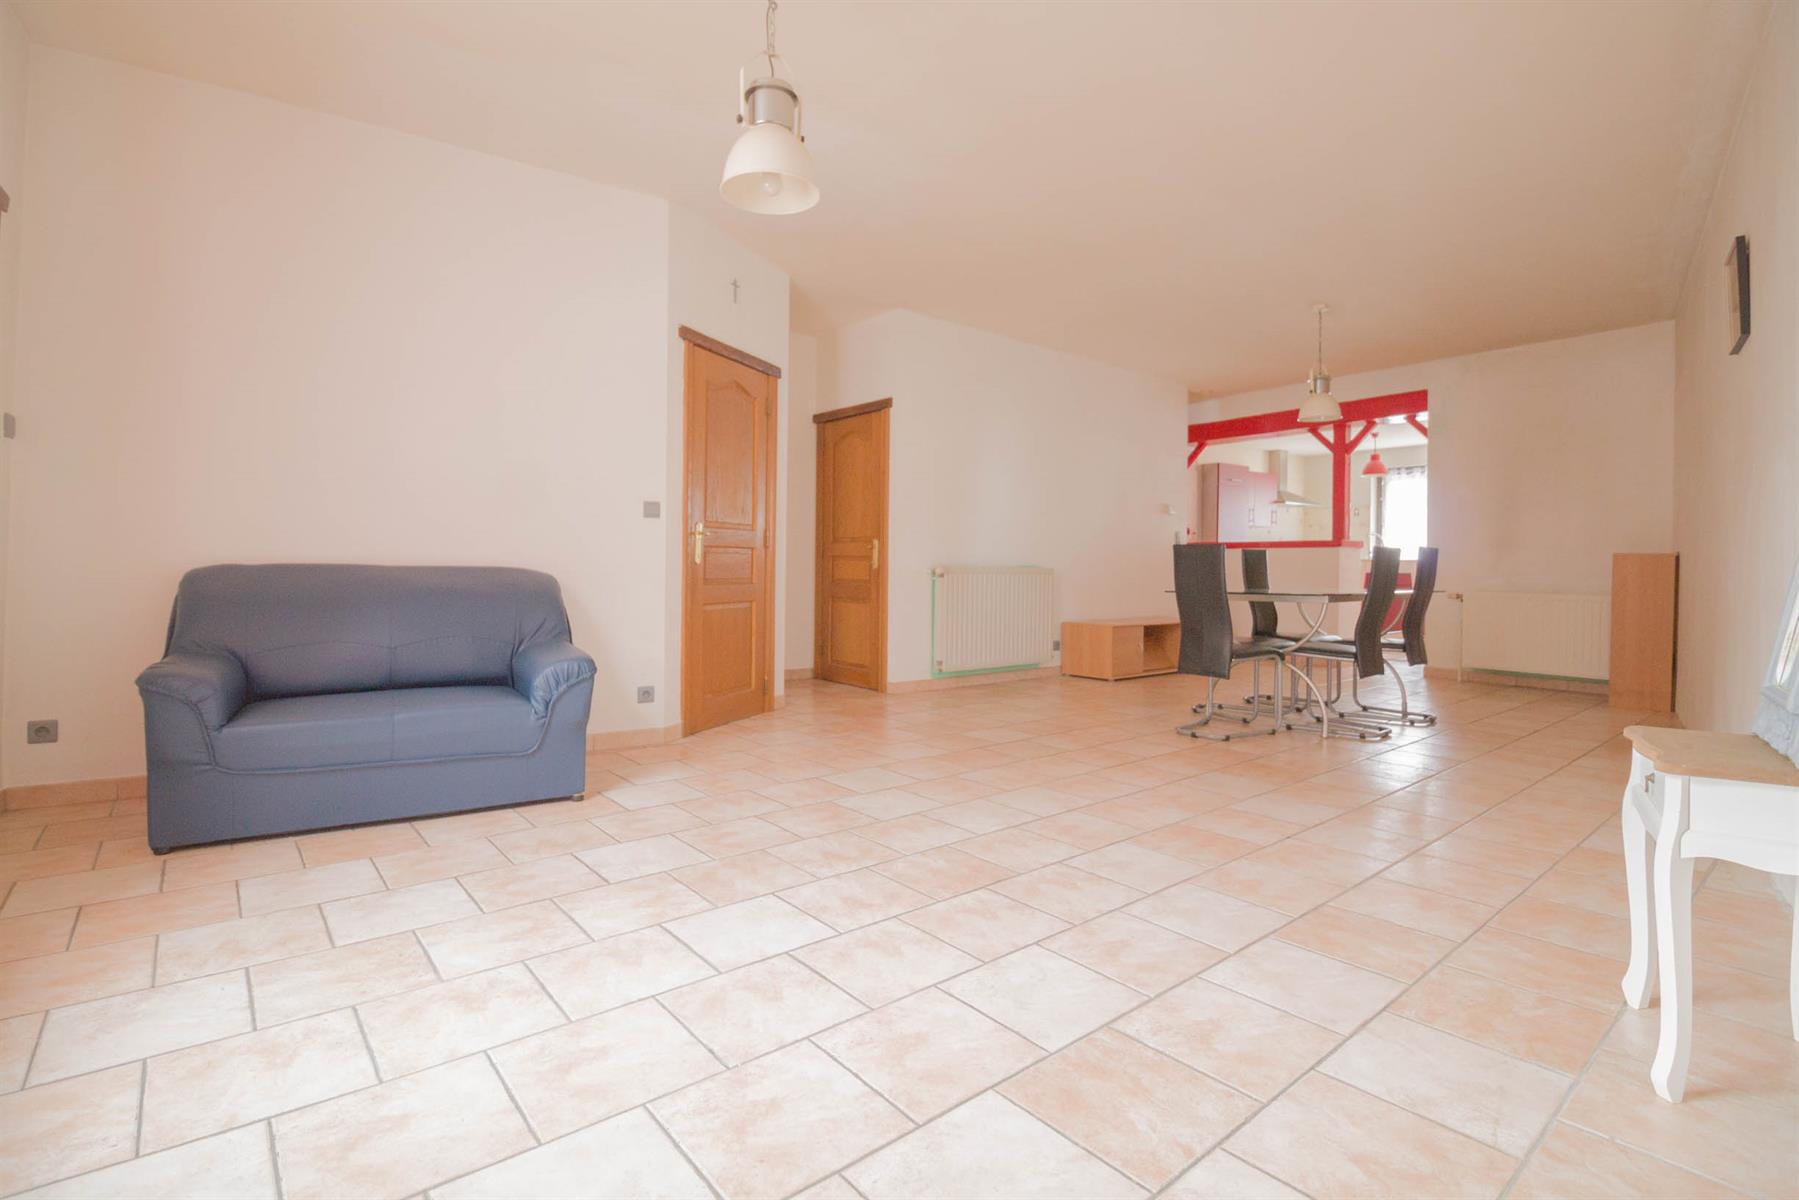 Maison - Courcelles (Trazegnies) - #4445047-3